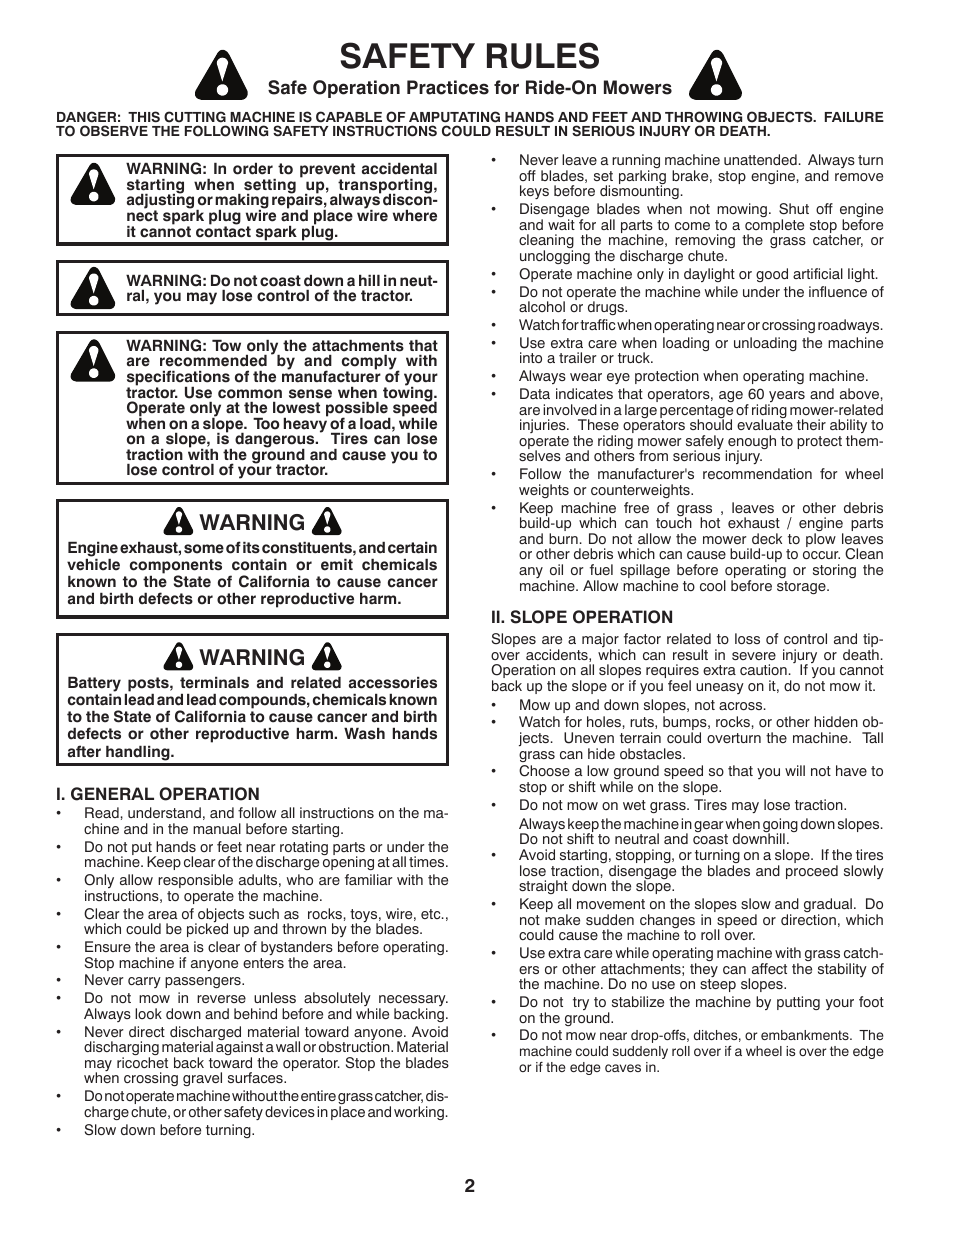 Safety rules, Warning, Safe operation practices for ride-on